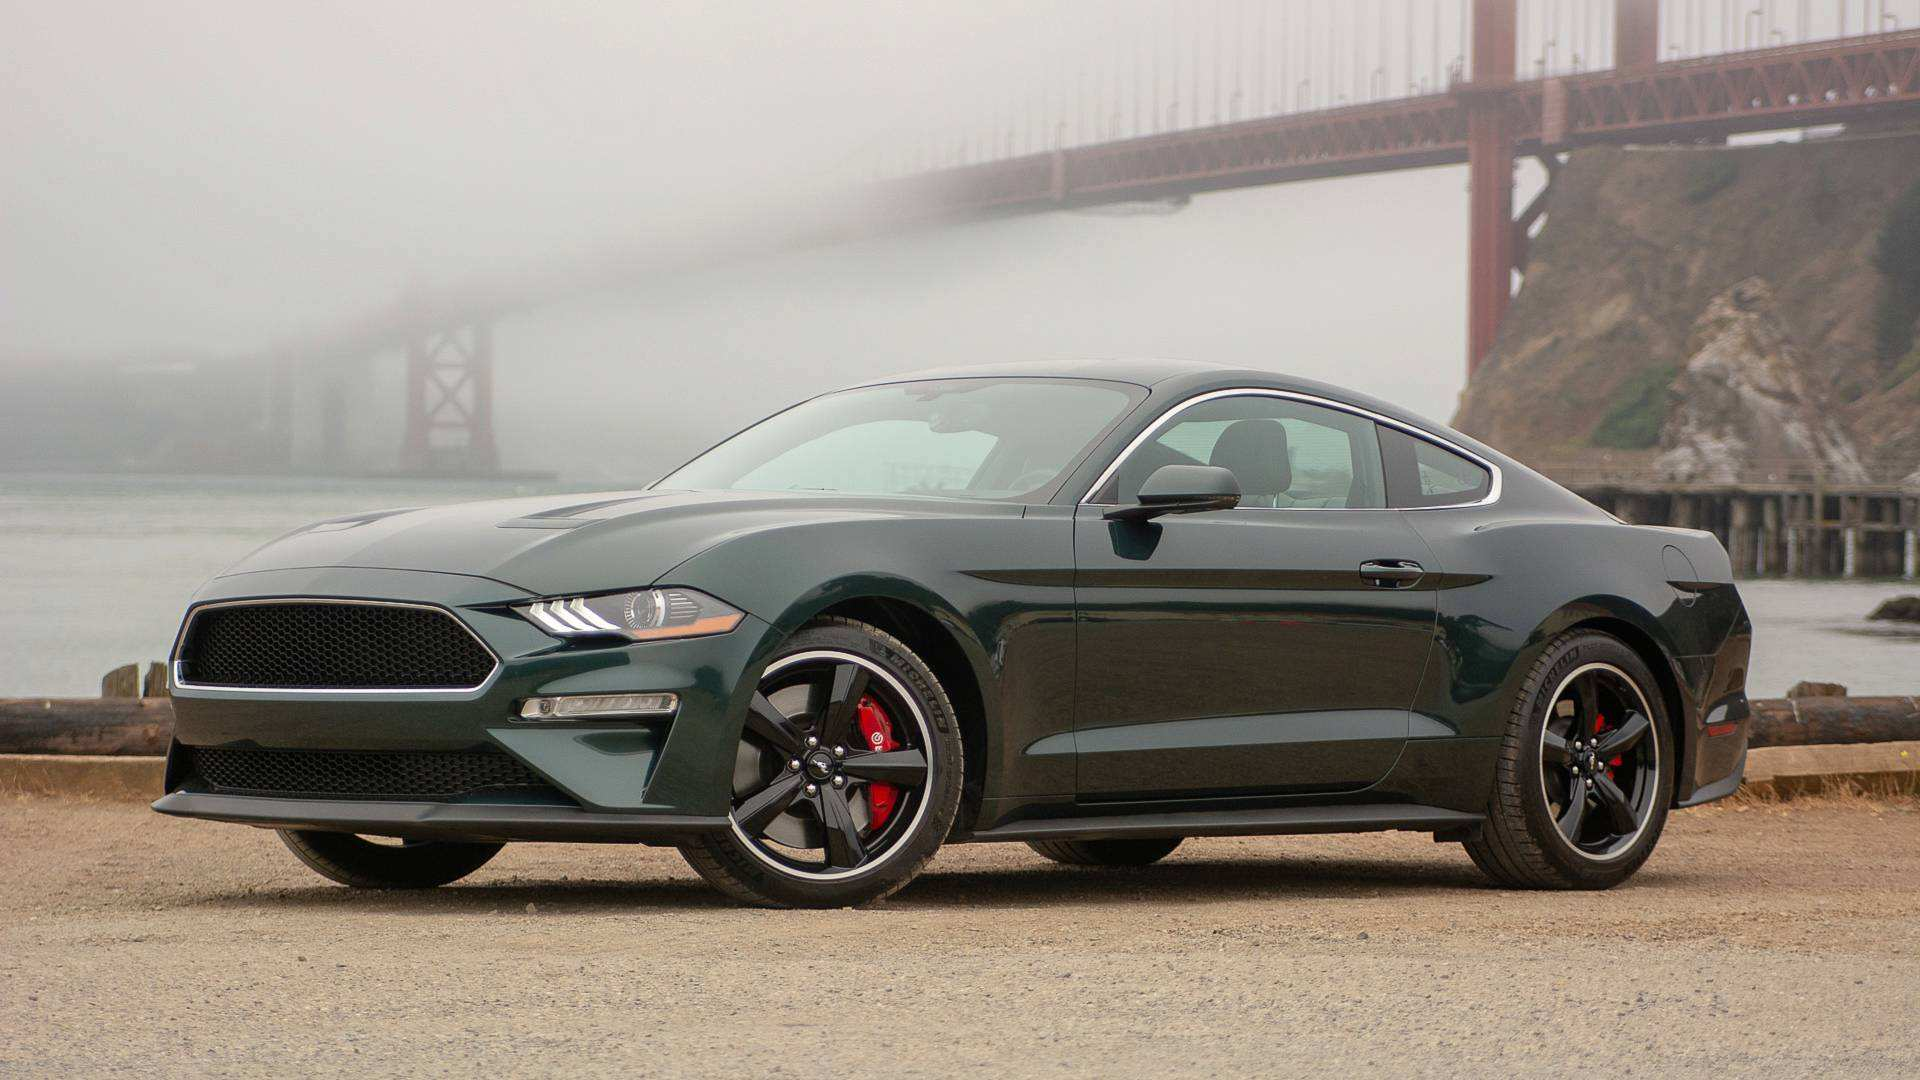 83 Best Review The Ford Bullitt 2019 For Sale First Drive Price Performance And Review Price with The Ford Bullitt 2019 For Sale First Drive Price Performance And Review